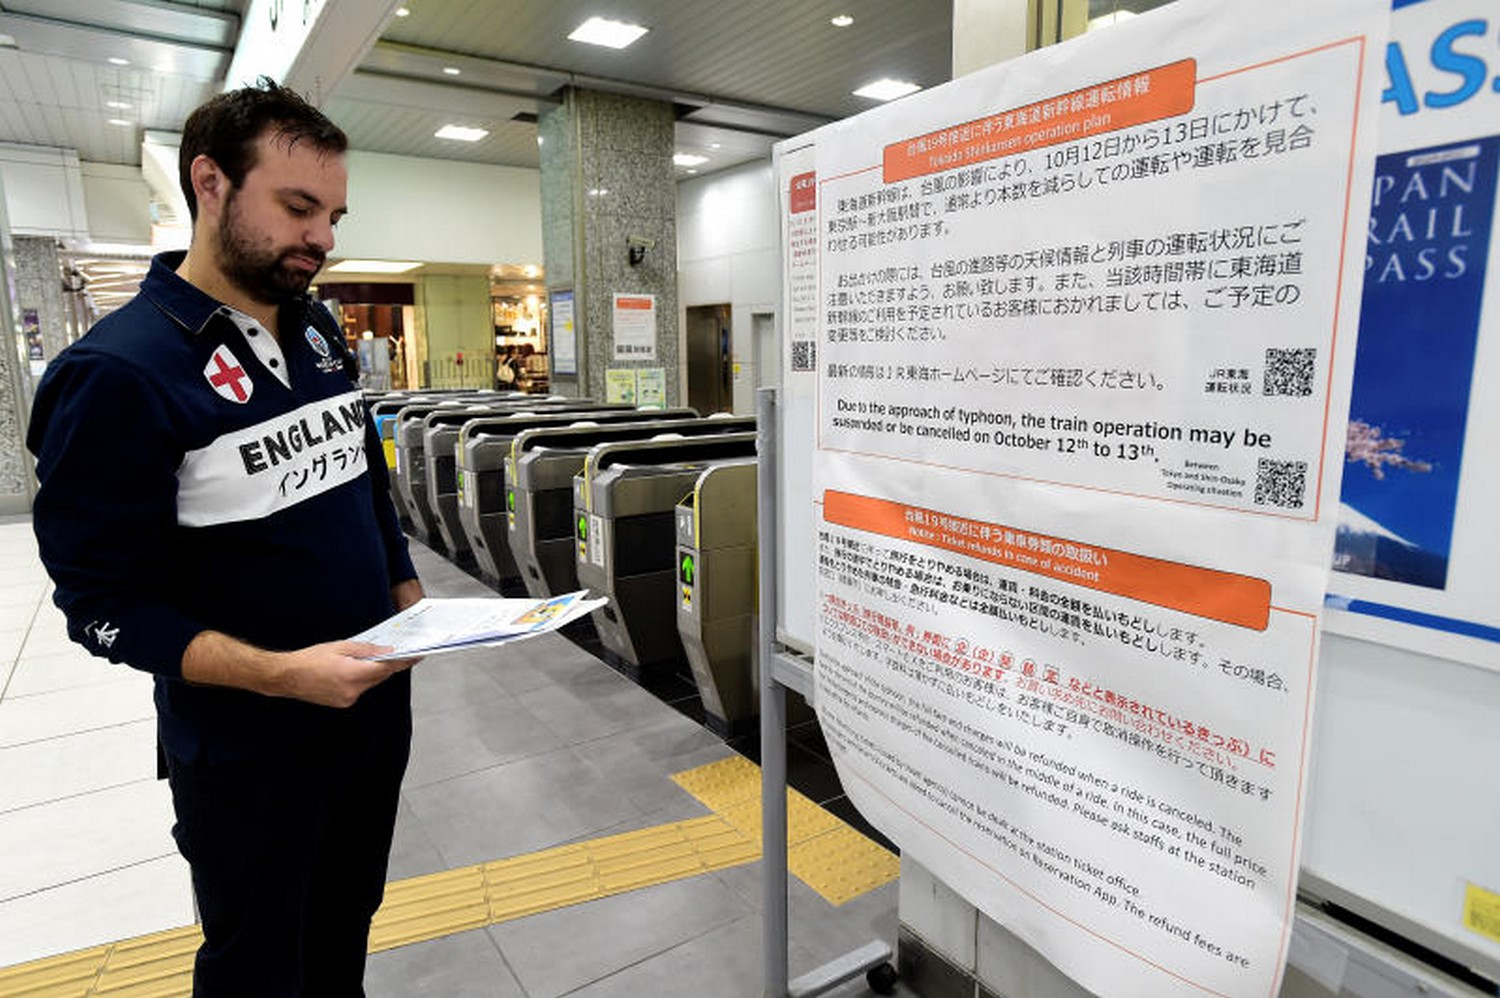 An England rugby supporter reads a travel warning posted at Hamamatsu railway station about Typhoon Hagibis and possible train suspensions and cancellations. (Photo: Reuters)